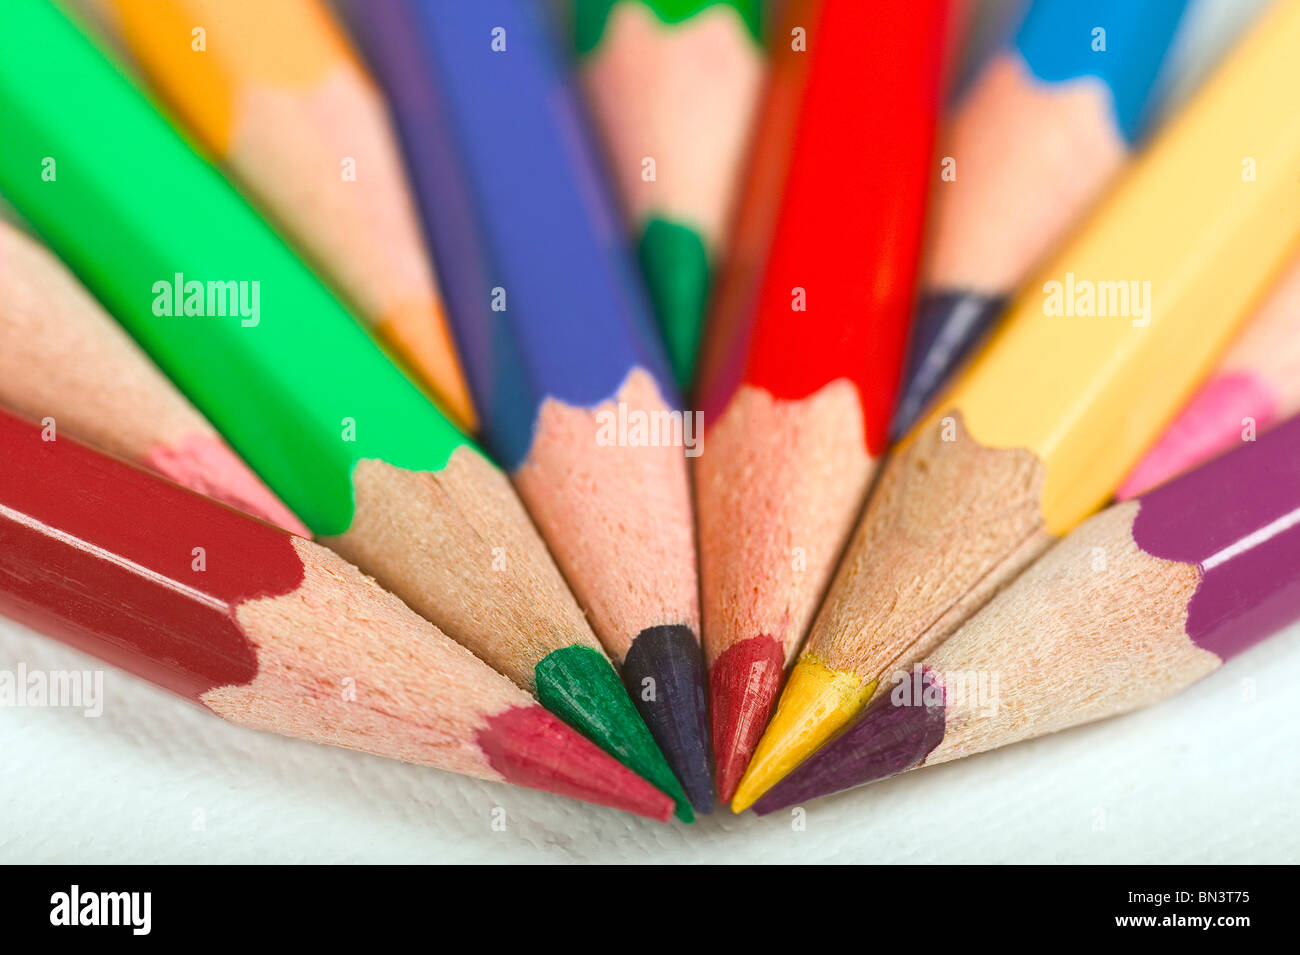 Close-up of colored pencils - Stock Image